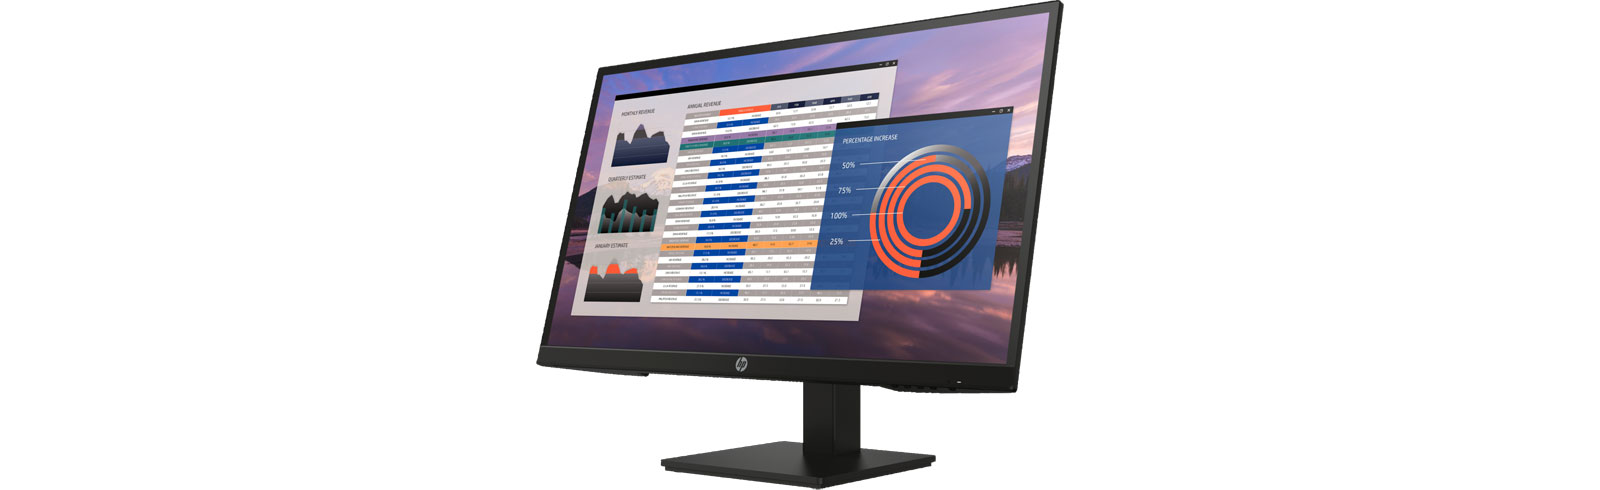 "HP releases the 27"" P27h G4 desktop monitor"